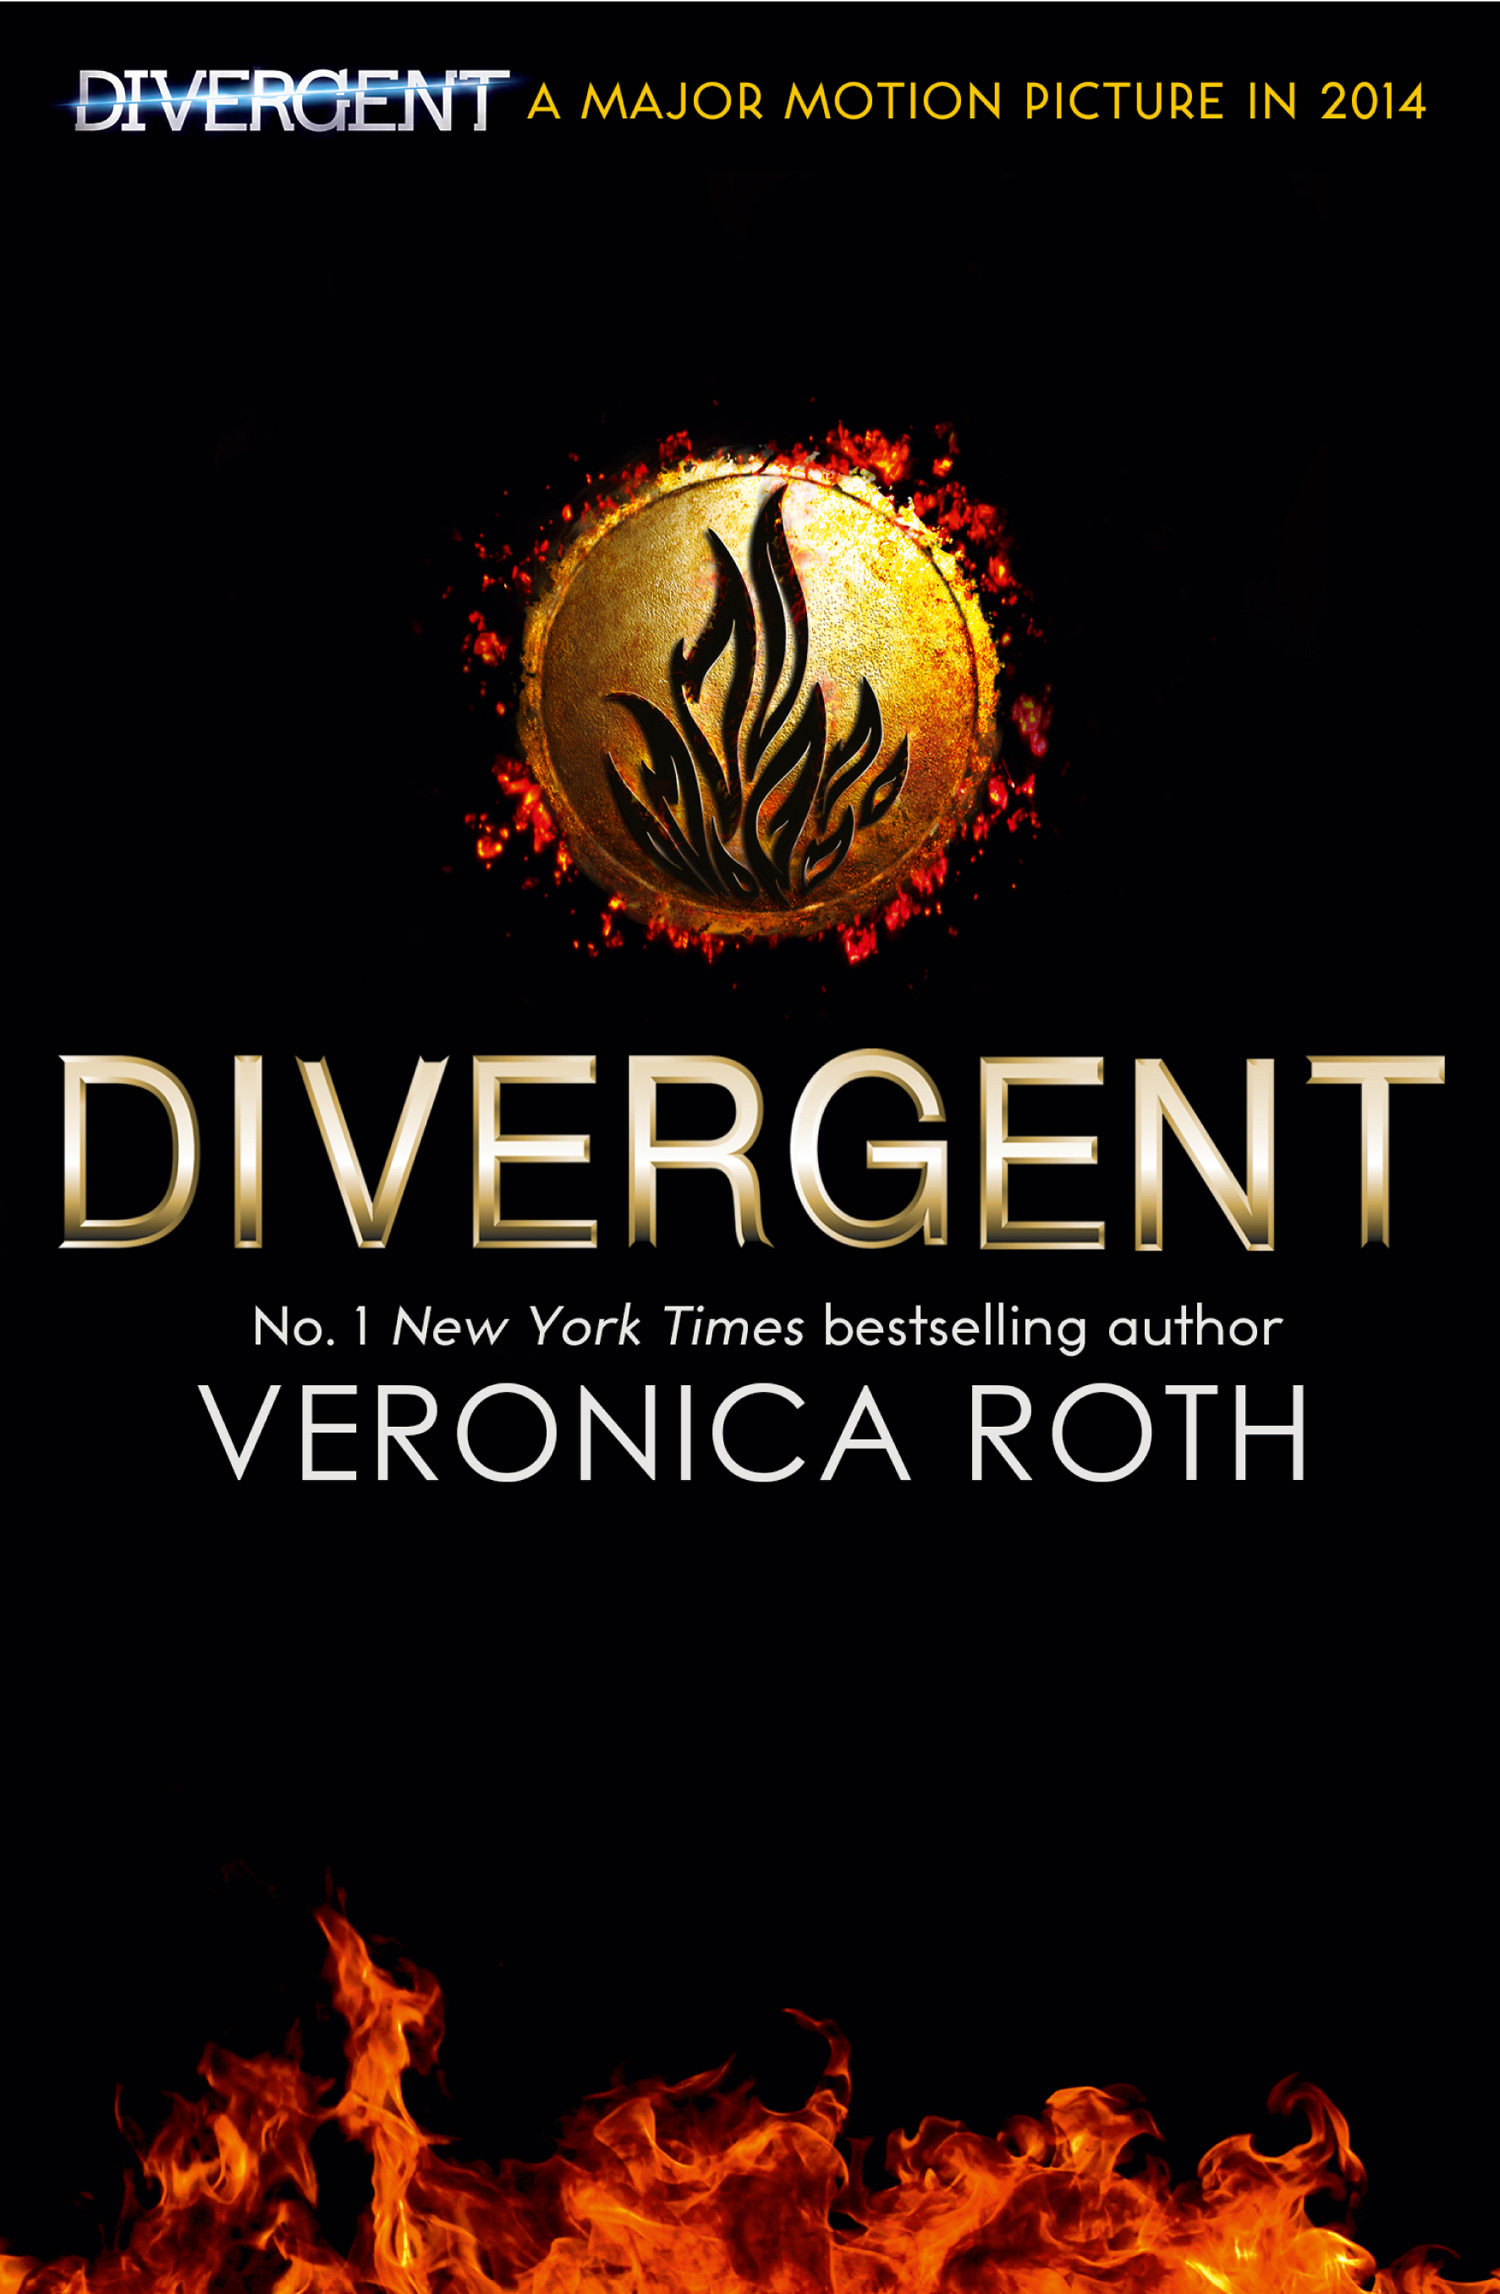 a review of divergent a novel by veronica roth Books young adult fiction allegiant (divergent #3) allegiant (divergent #3) featured hot 32 (2) 40 (11) 3379 7 write review add to favorites author(s) veronica.